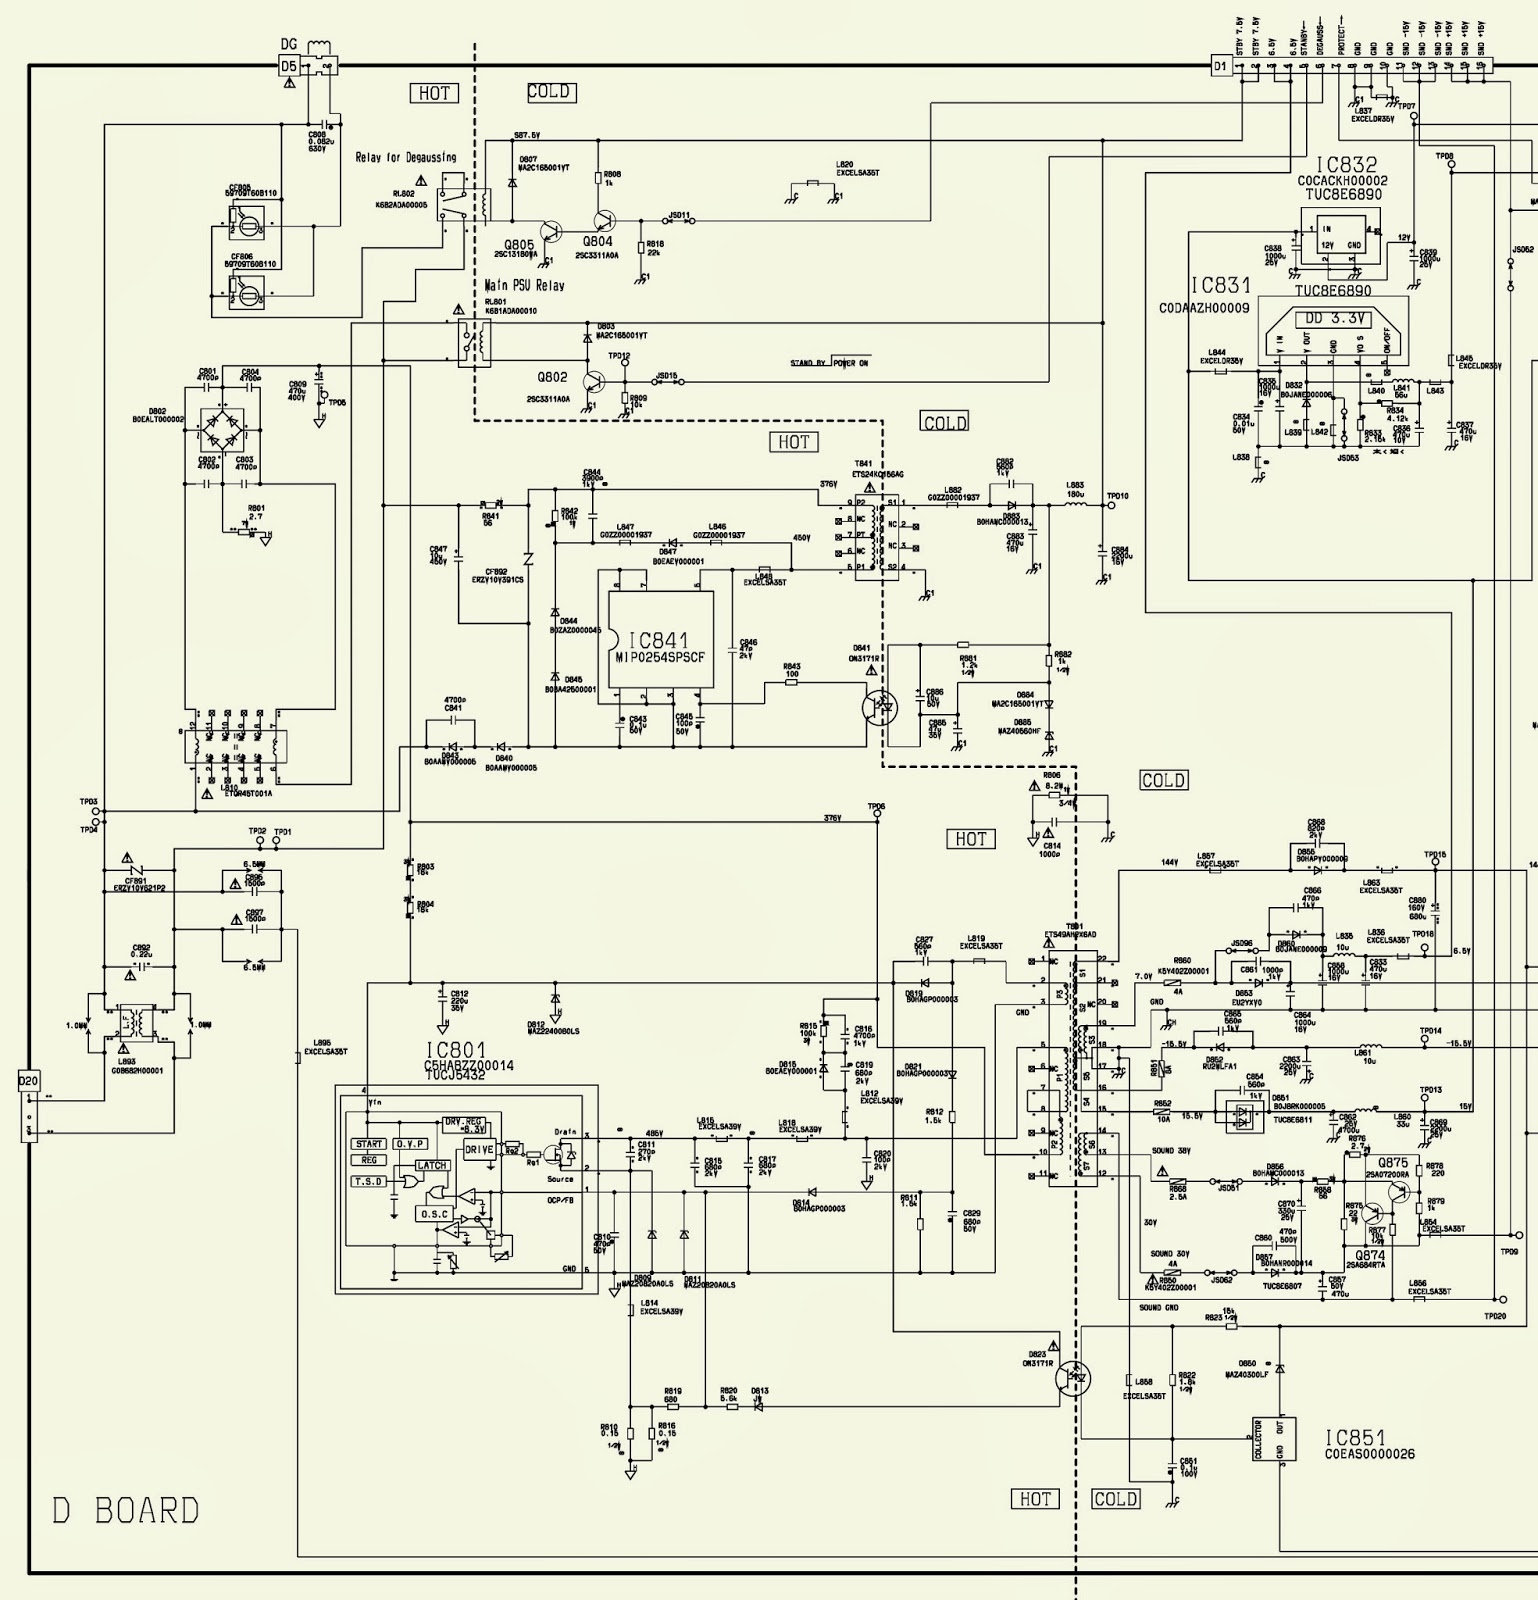 POWER.bmp panasonic microwave wiring diagram 34 wiring diagram images